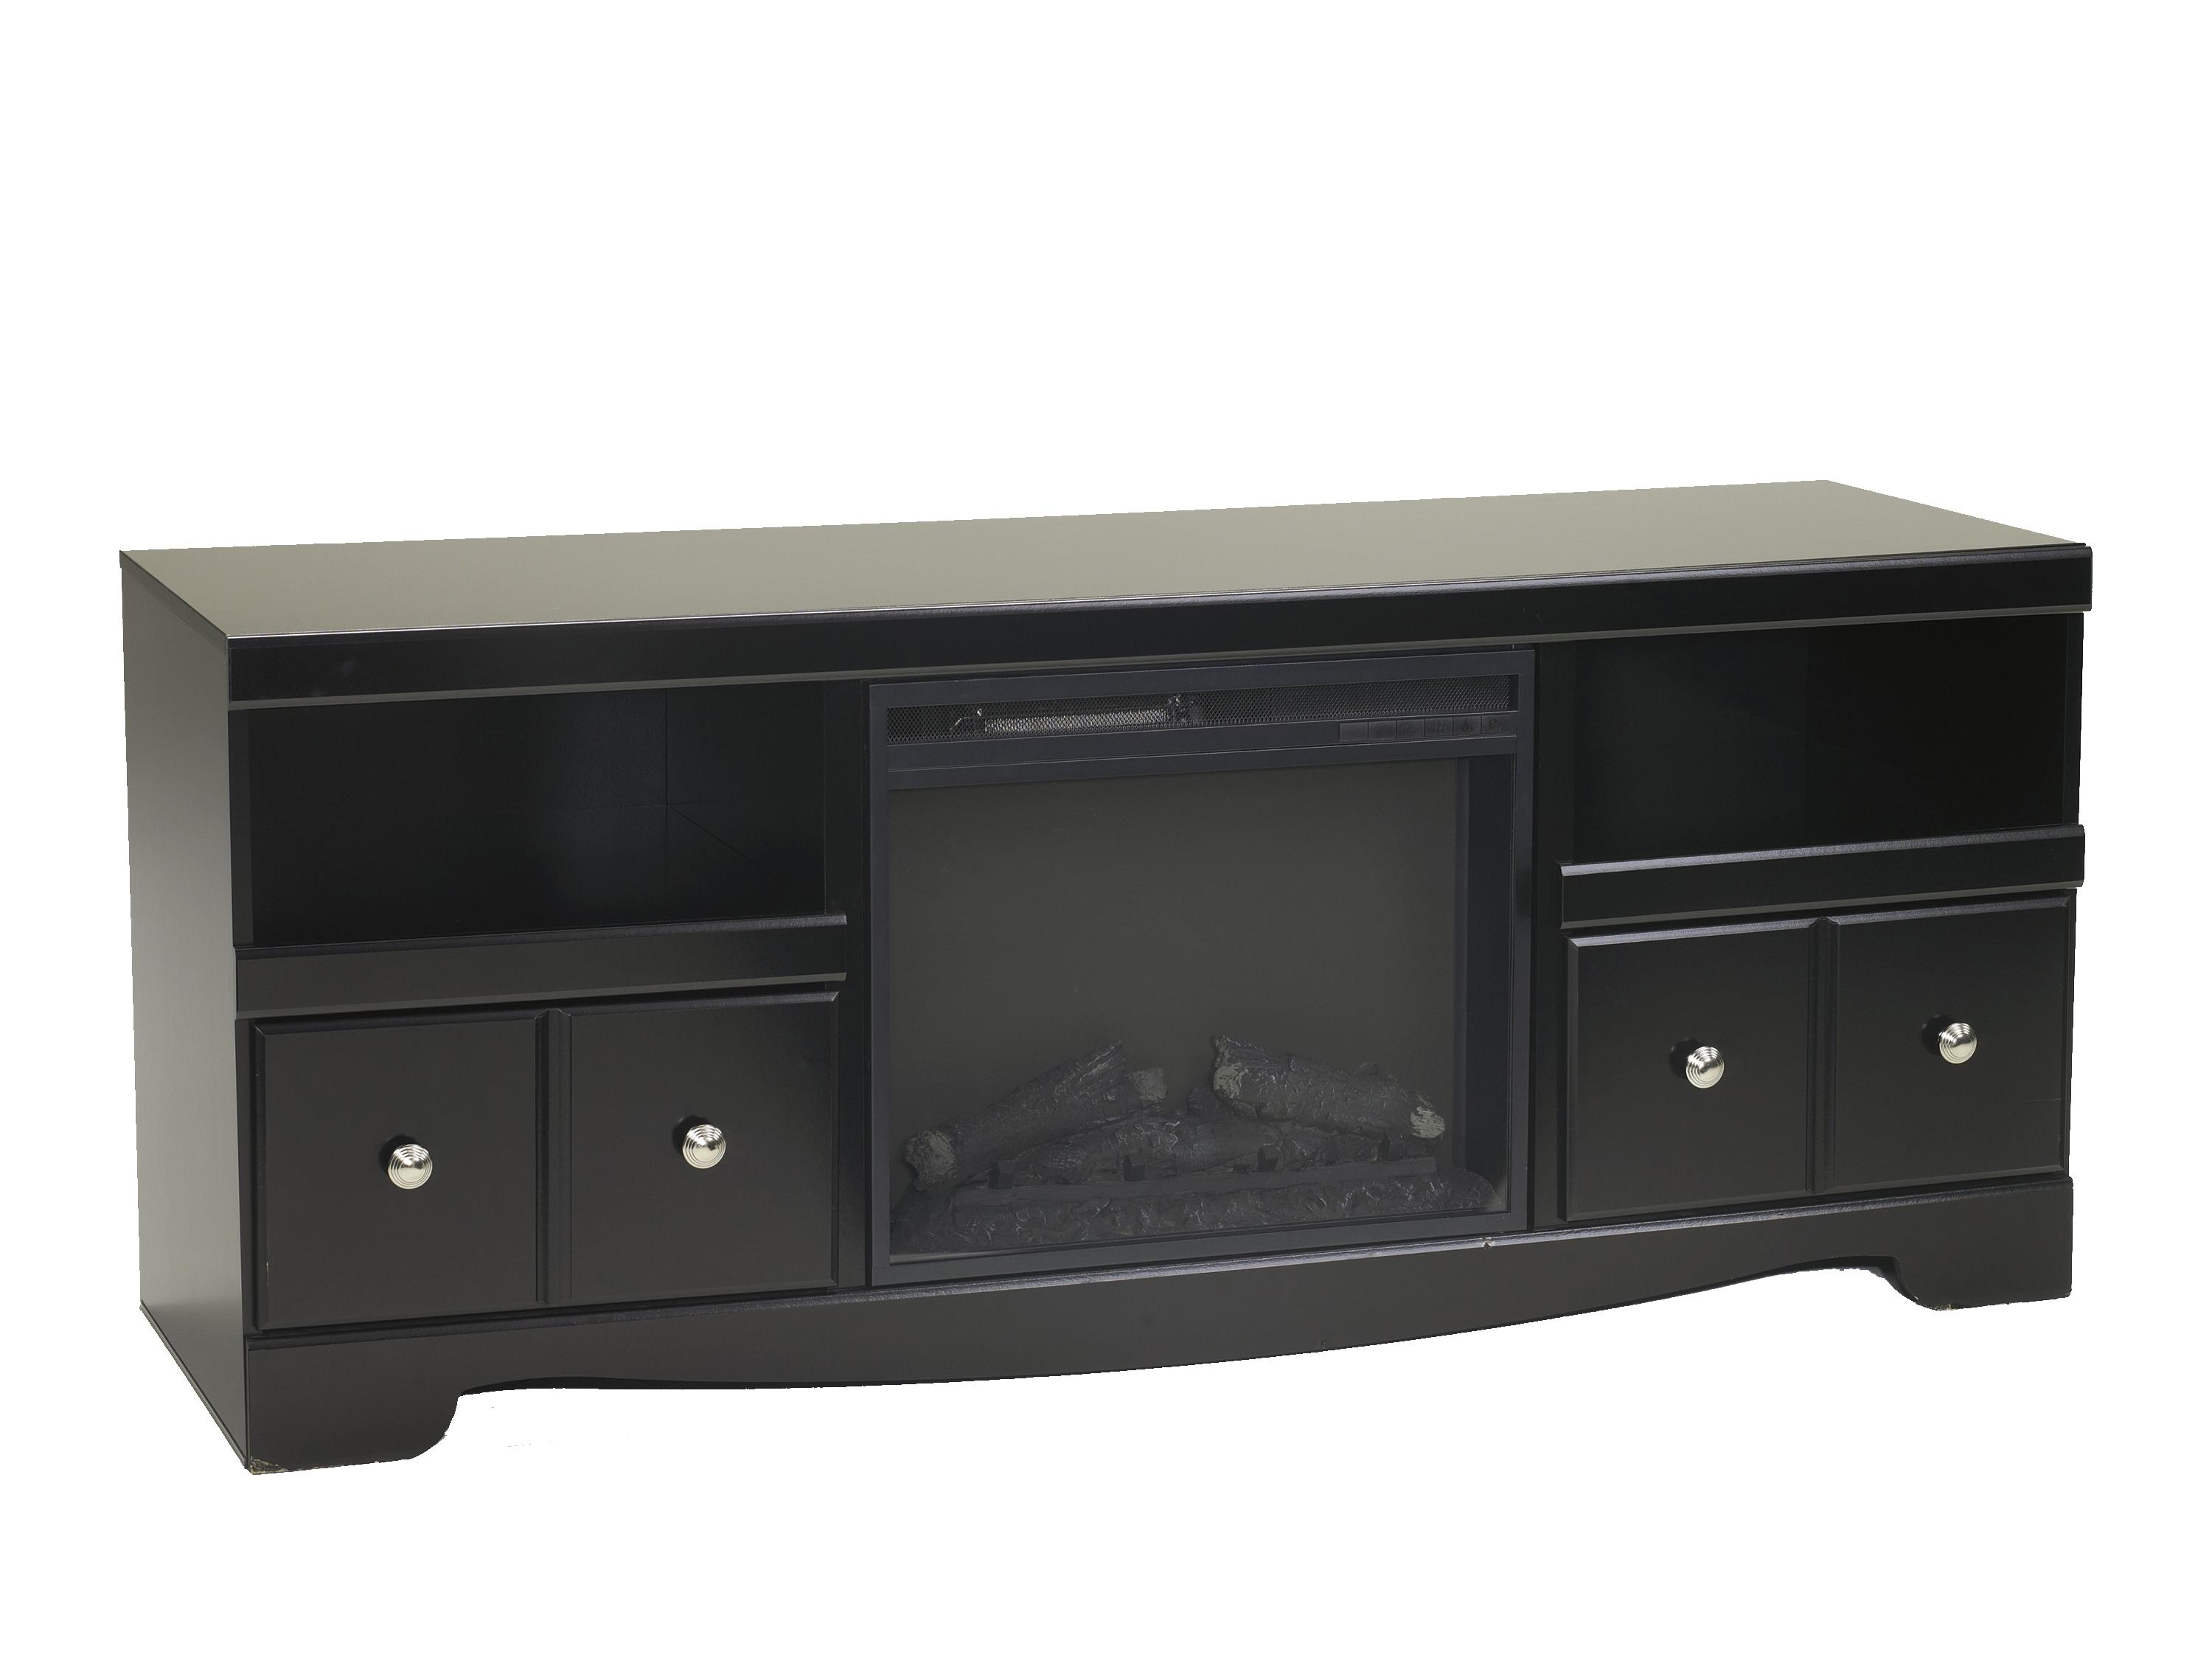 Signature Design by Ashley Shay Large TV Stand with Fireplace - Item Number: W271-68+W100-01